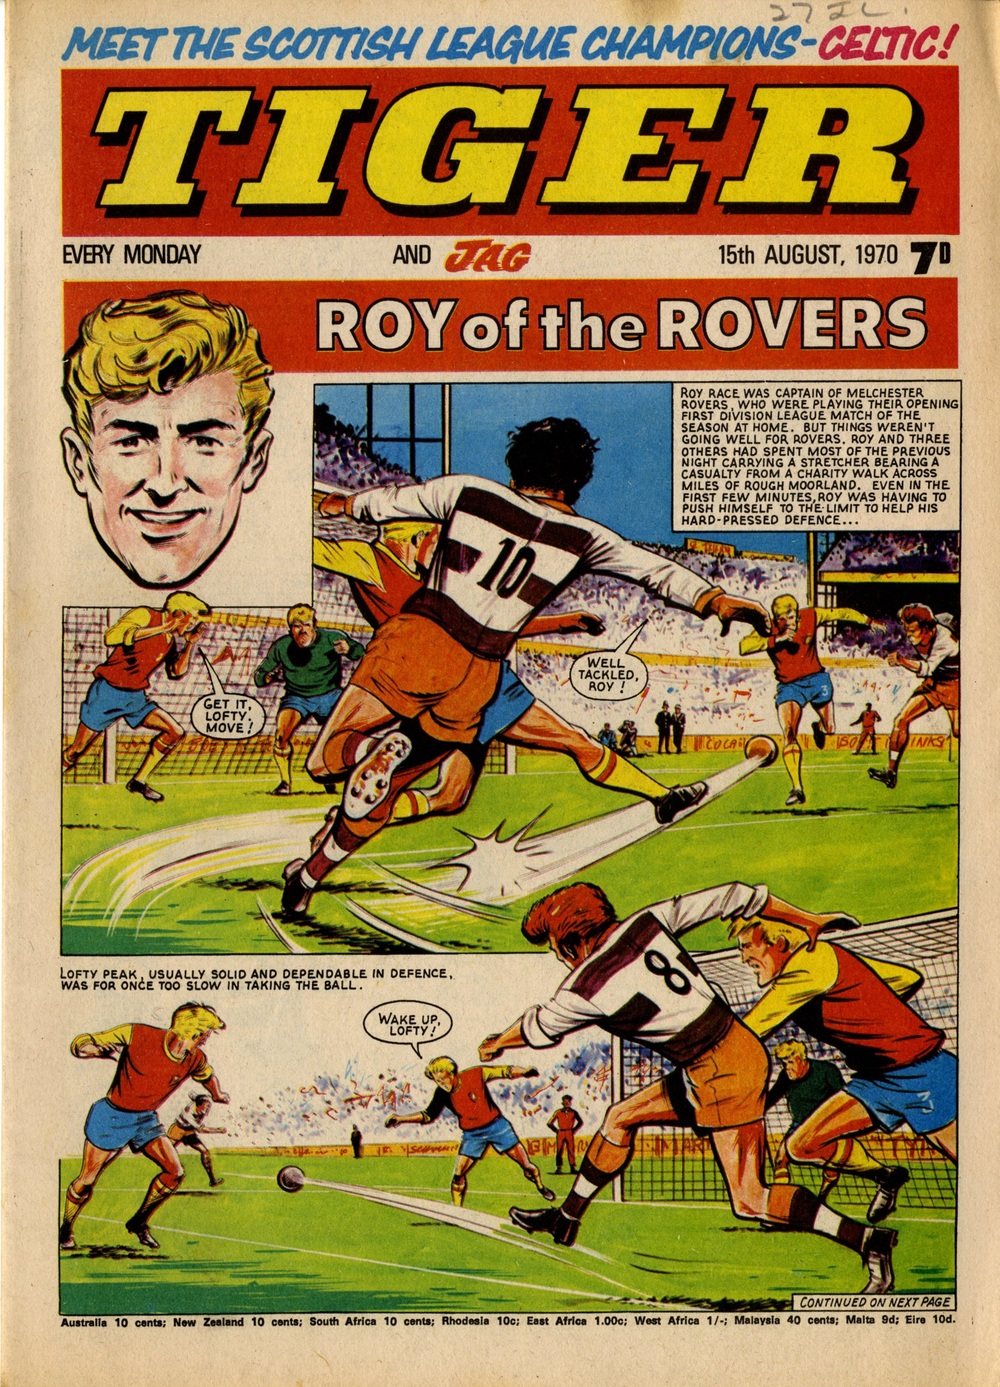 15 August 1970: Tiger (Roy of the Rovers: Yvonne Hutton (artist))